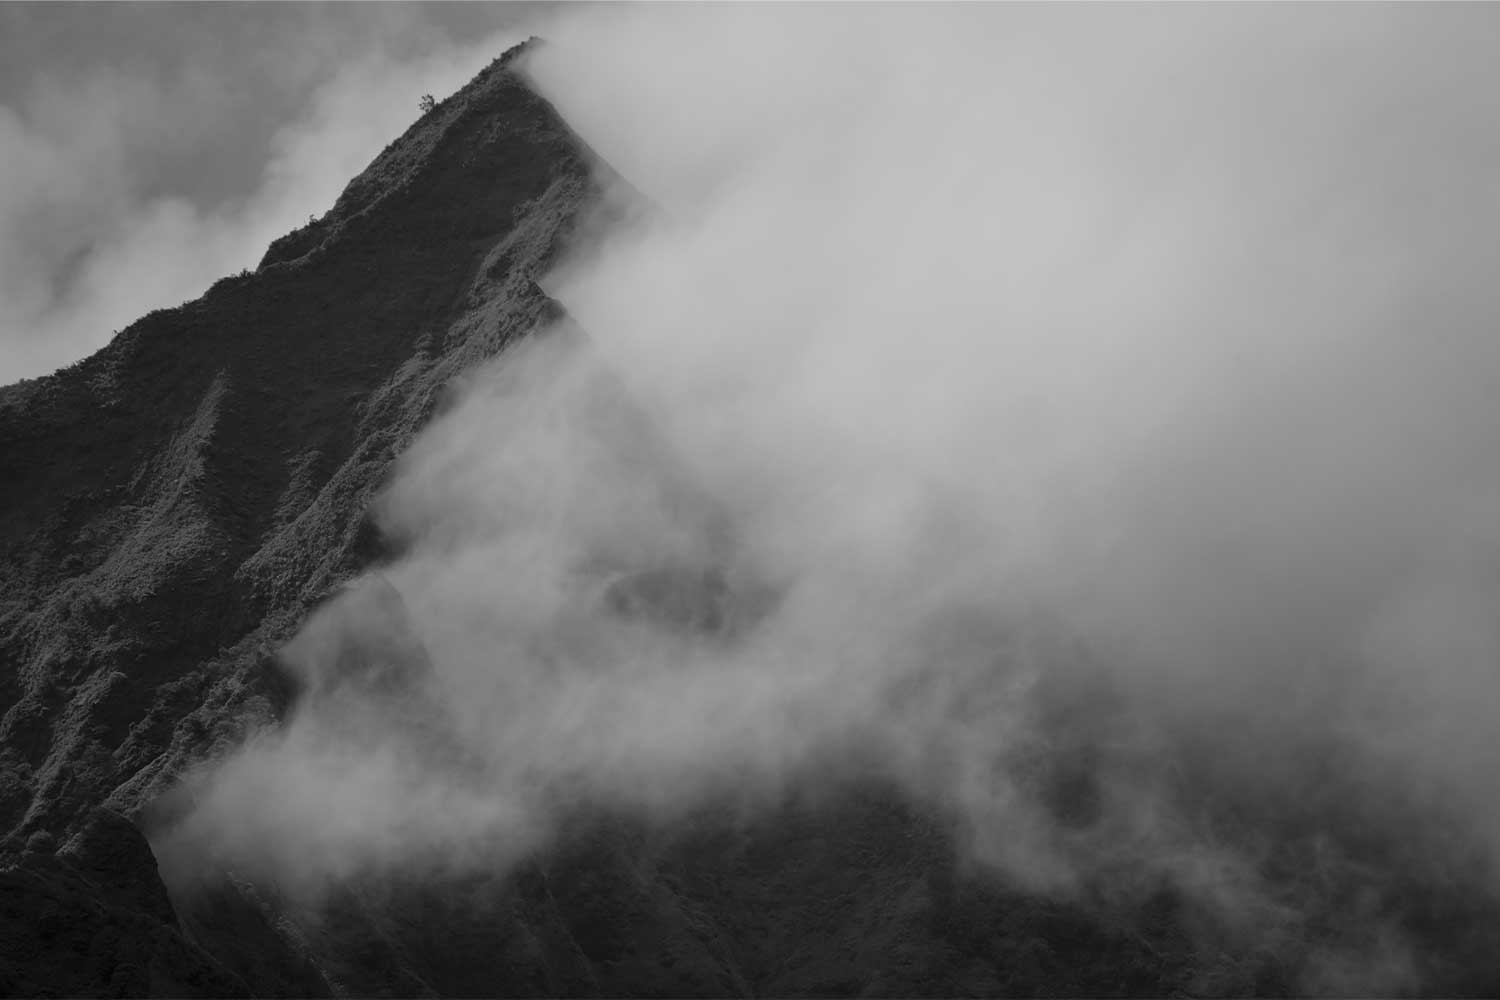 Half of a Koolau mountain peak covered with mist